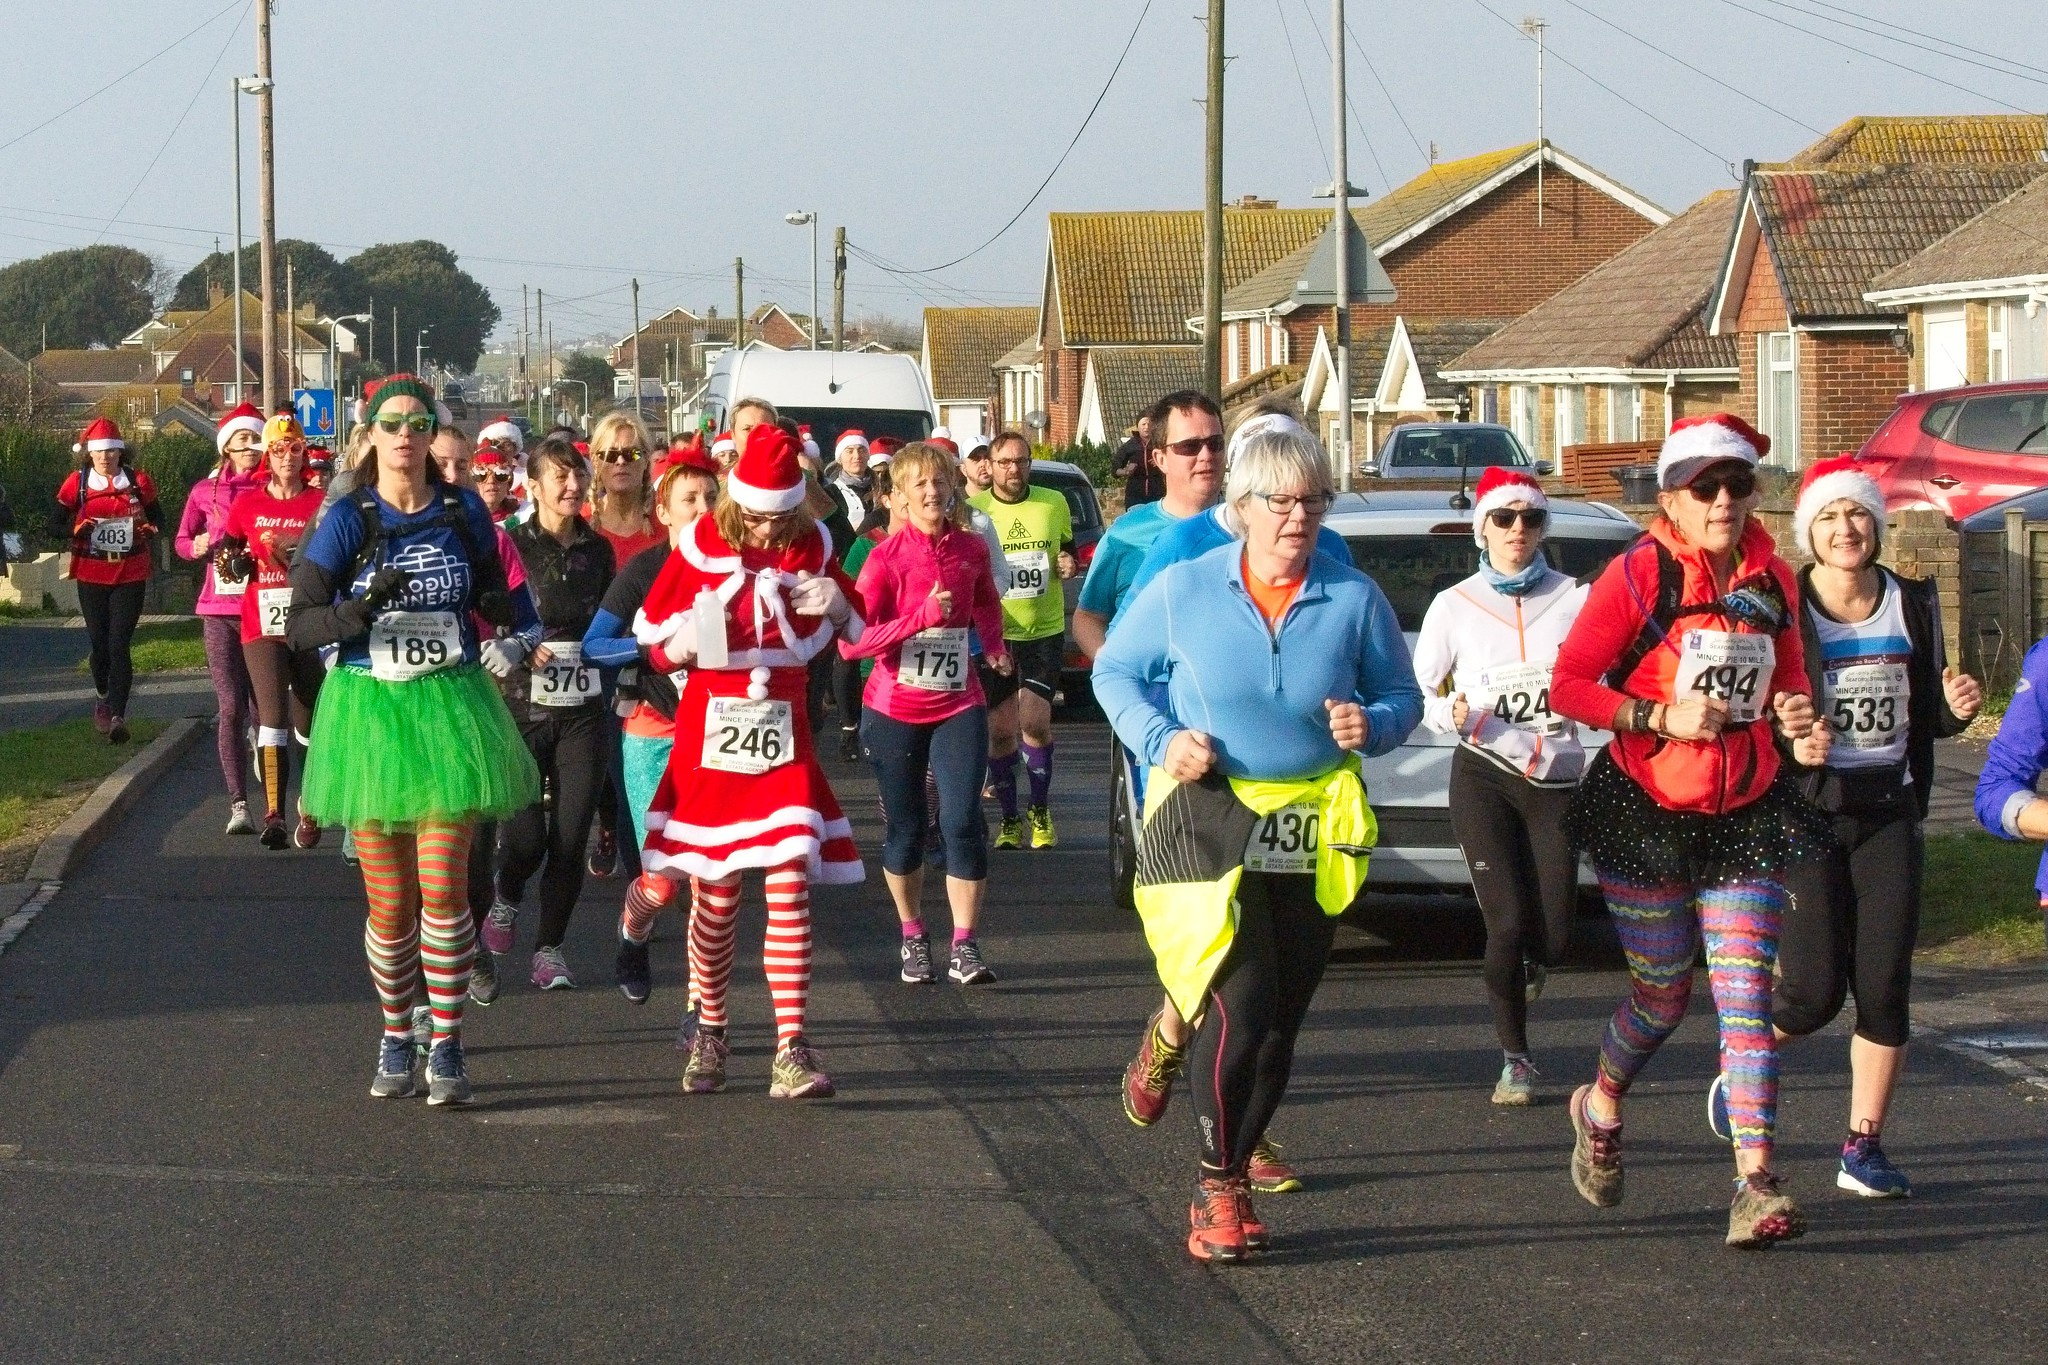 Mince Pie 10 Run runners dressed in xmas outfits